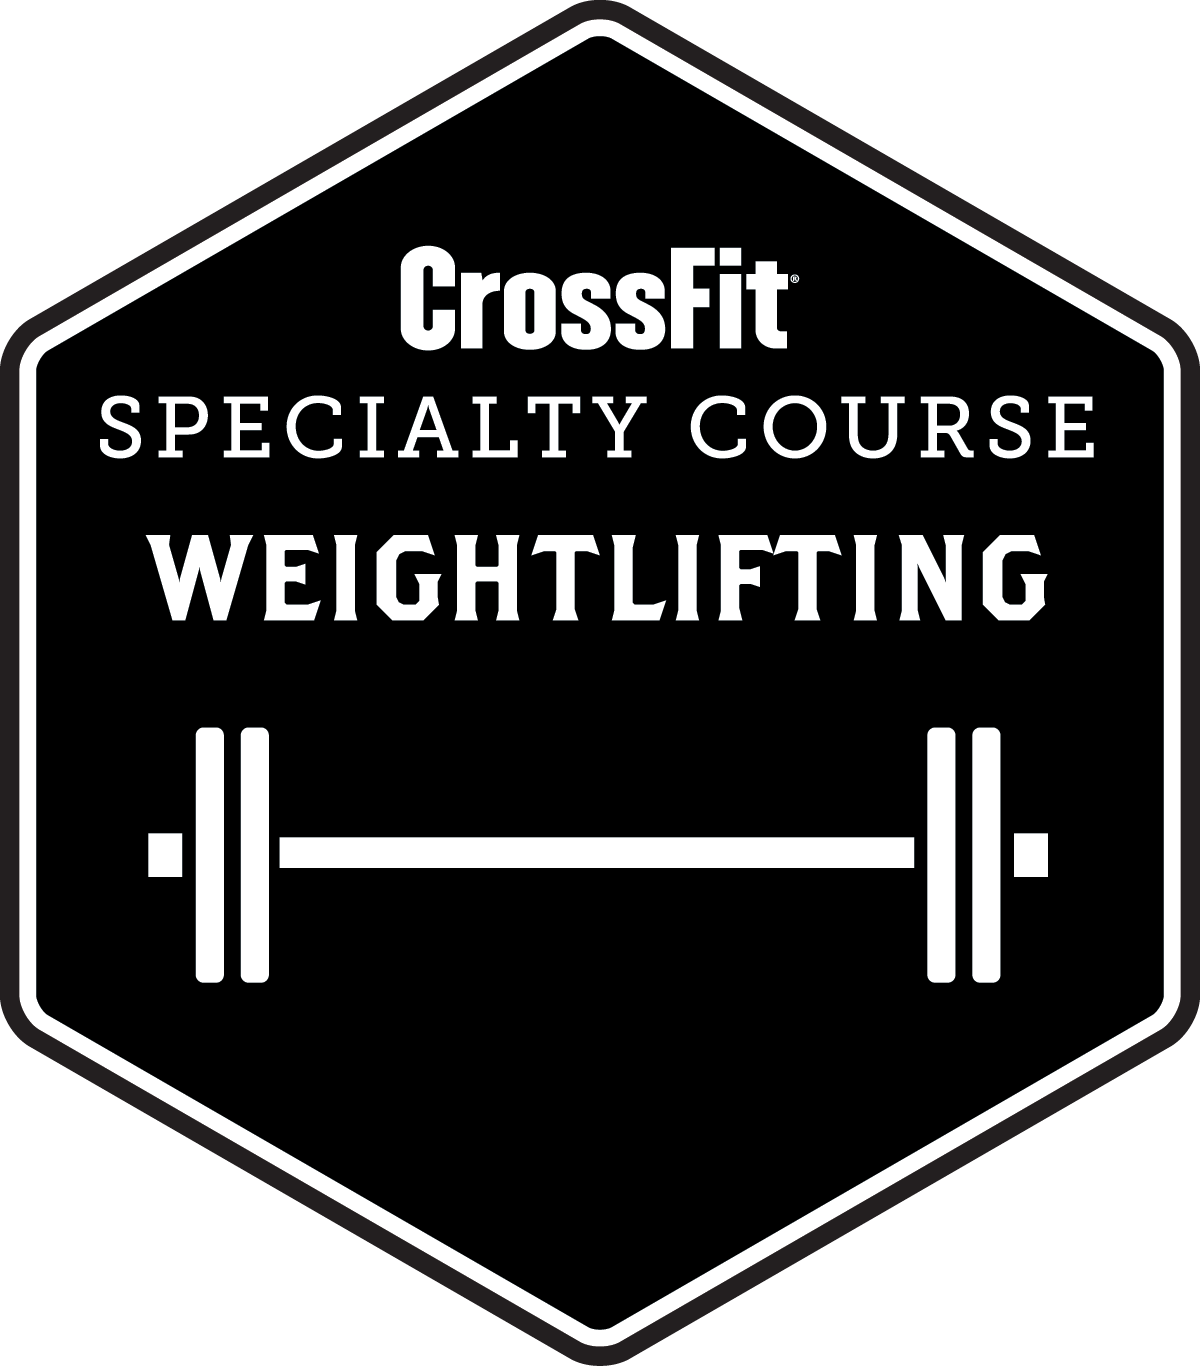 Crossfit Specialty Course Weightlifting